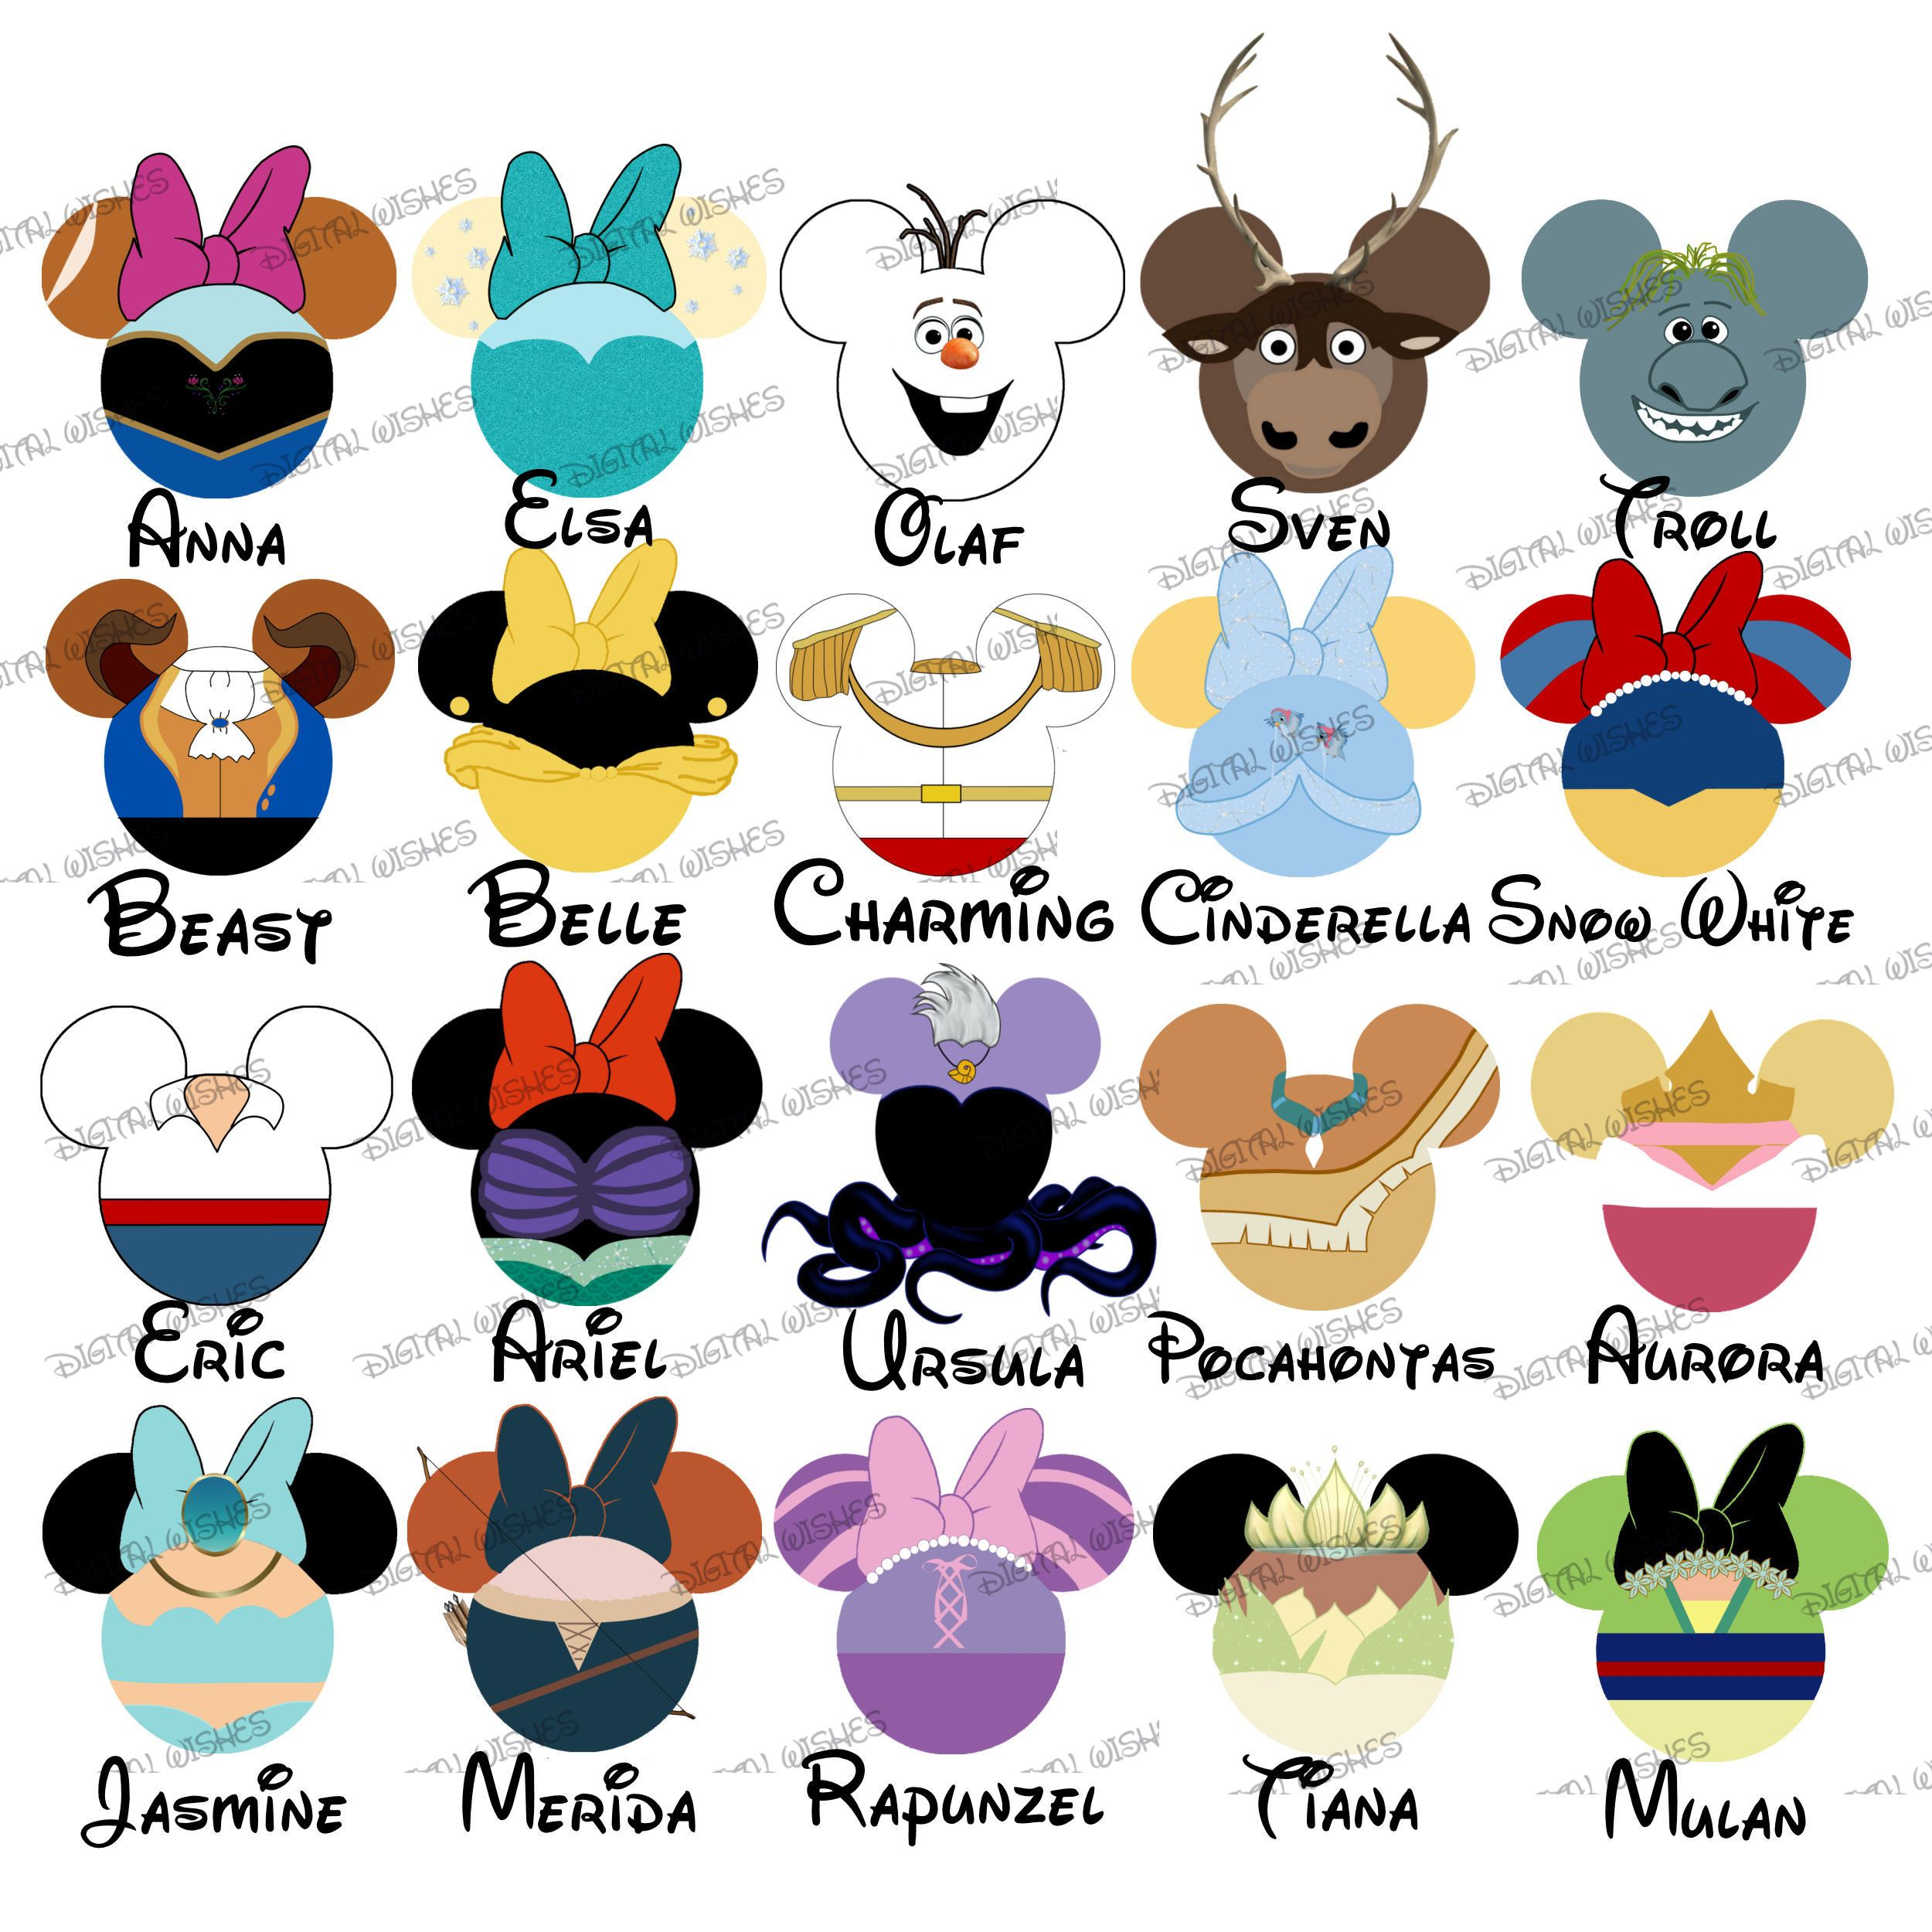 CHOOSE YOUR MOUSE HEAD CHARACTERS Disney Family Vacation Digital Clip Art 1 8 Characters